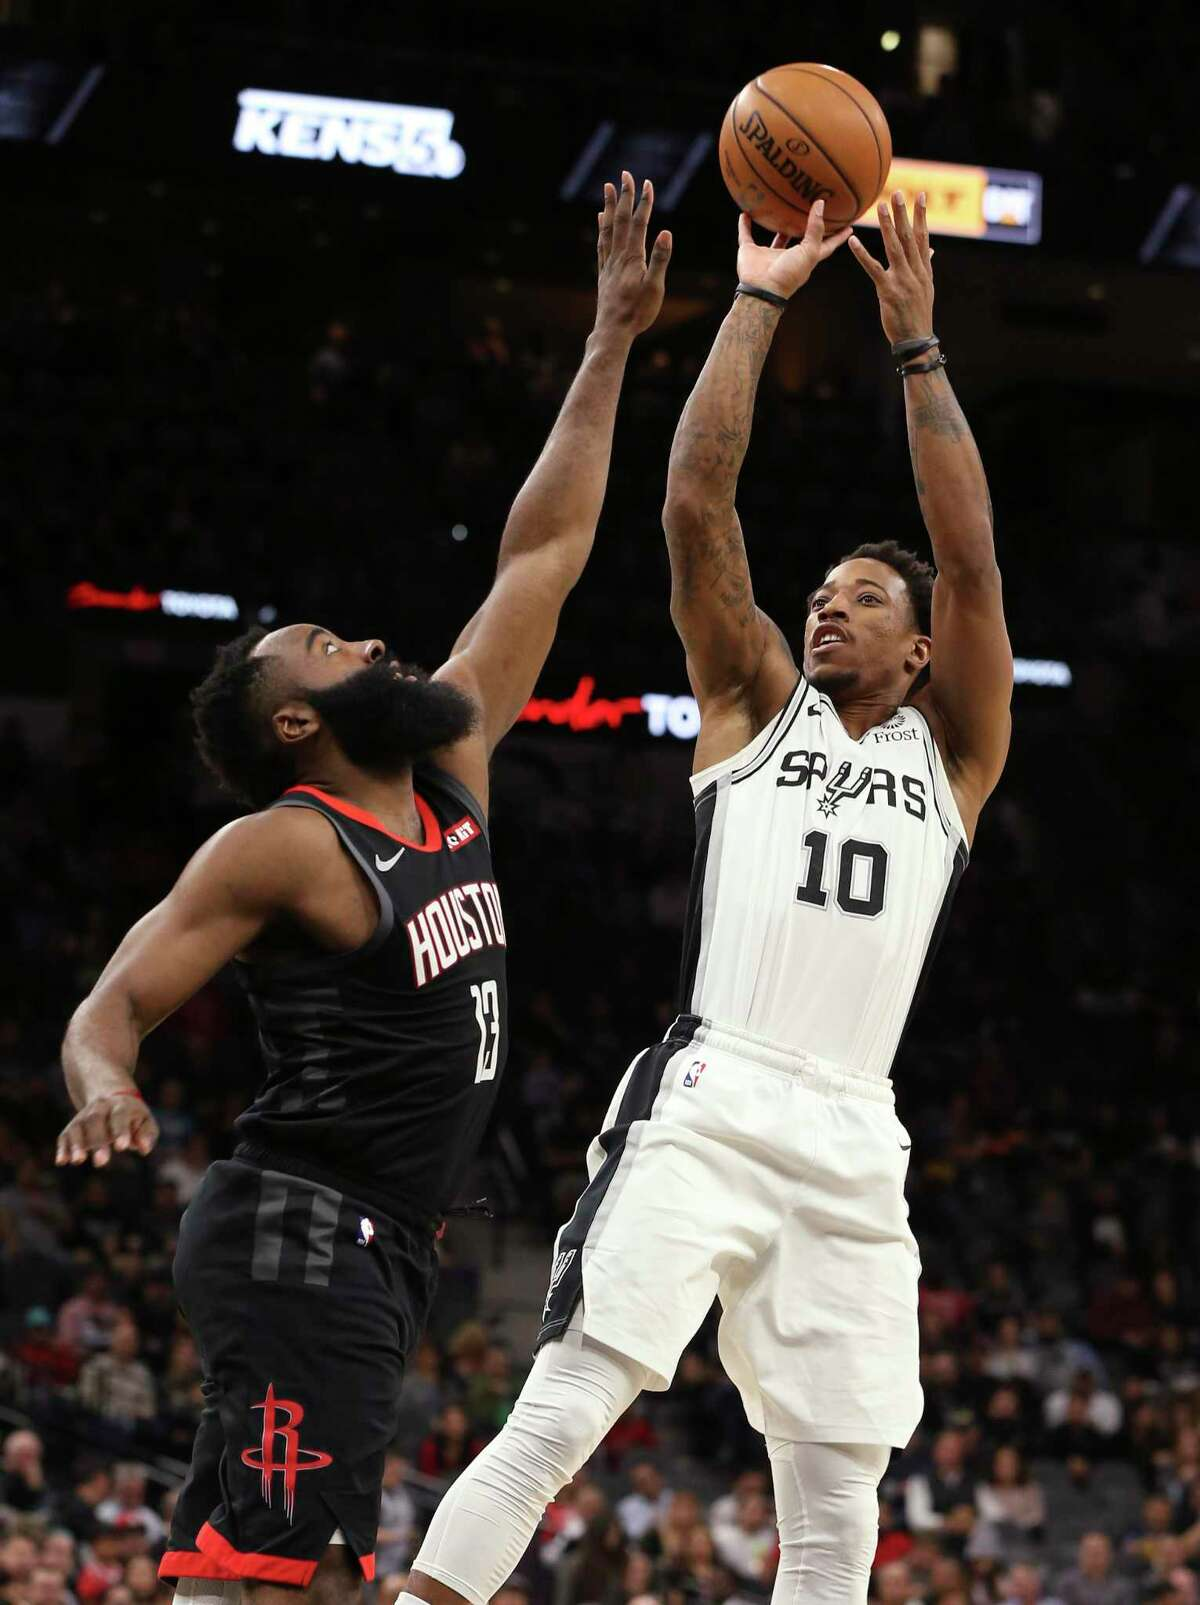 Spurs' DeMar DeRozan (10) shoots against Houston Rockets' James Harden (13) during their game at the AT&T Center on Tuesday, Dec. 3, 2019.